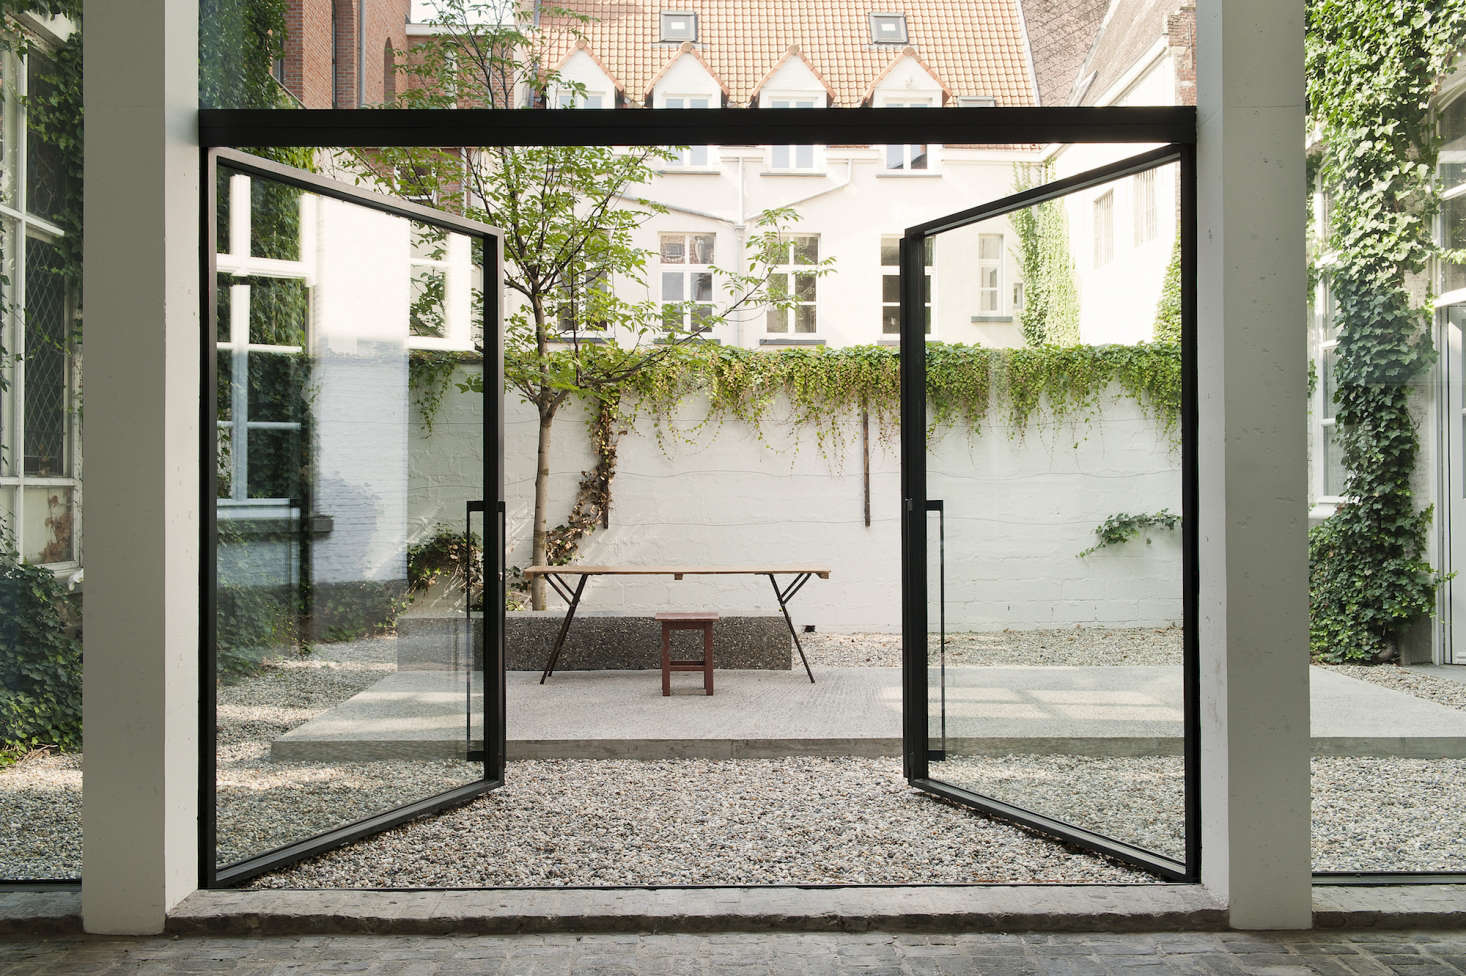 The gallery space leads onto a pebbled courtyard with a concrete island.